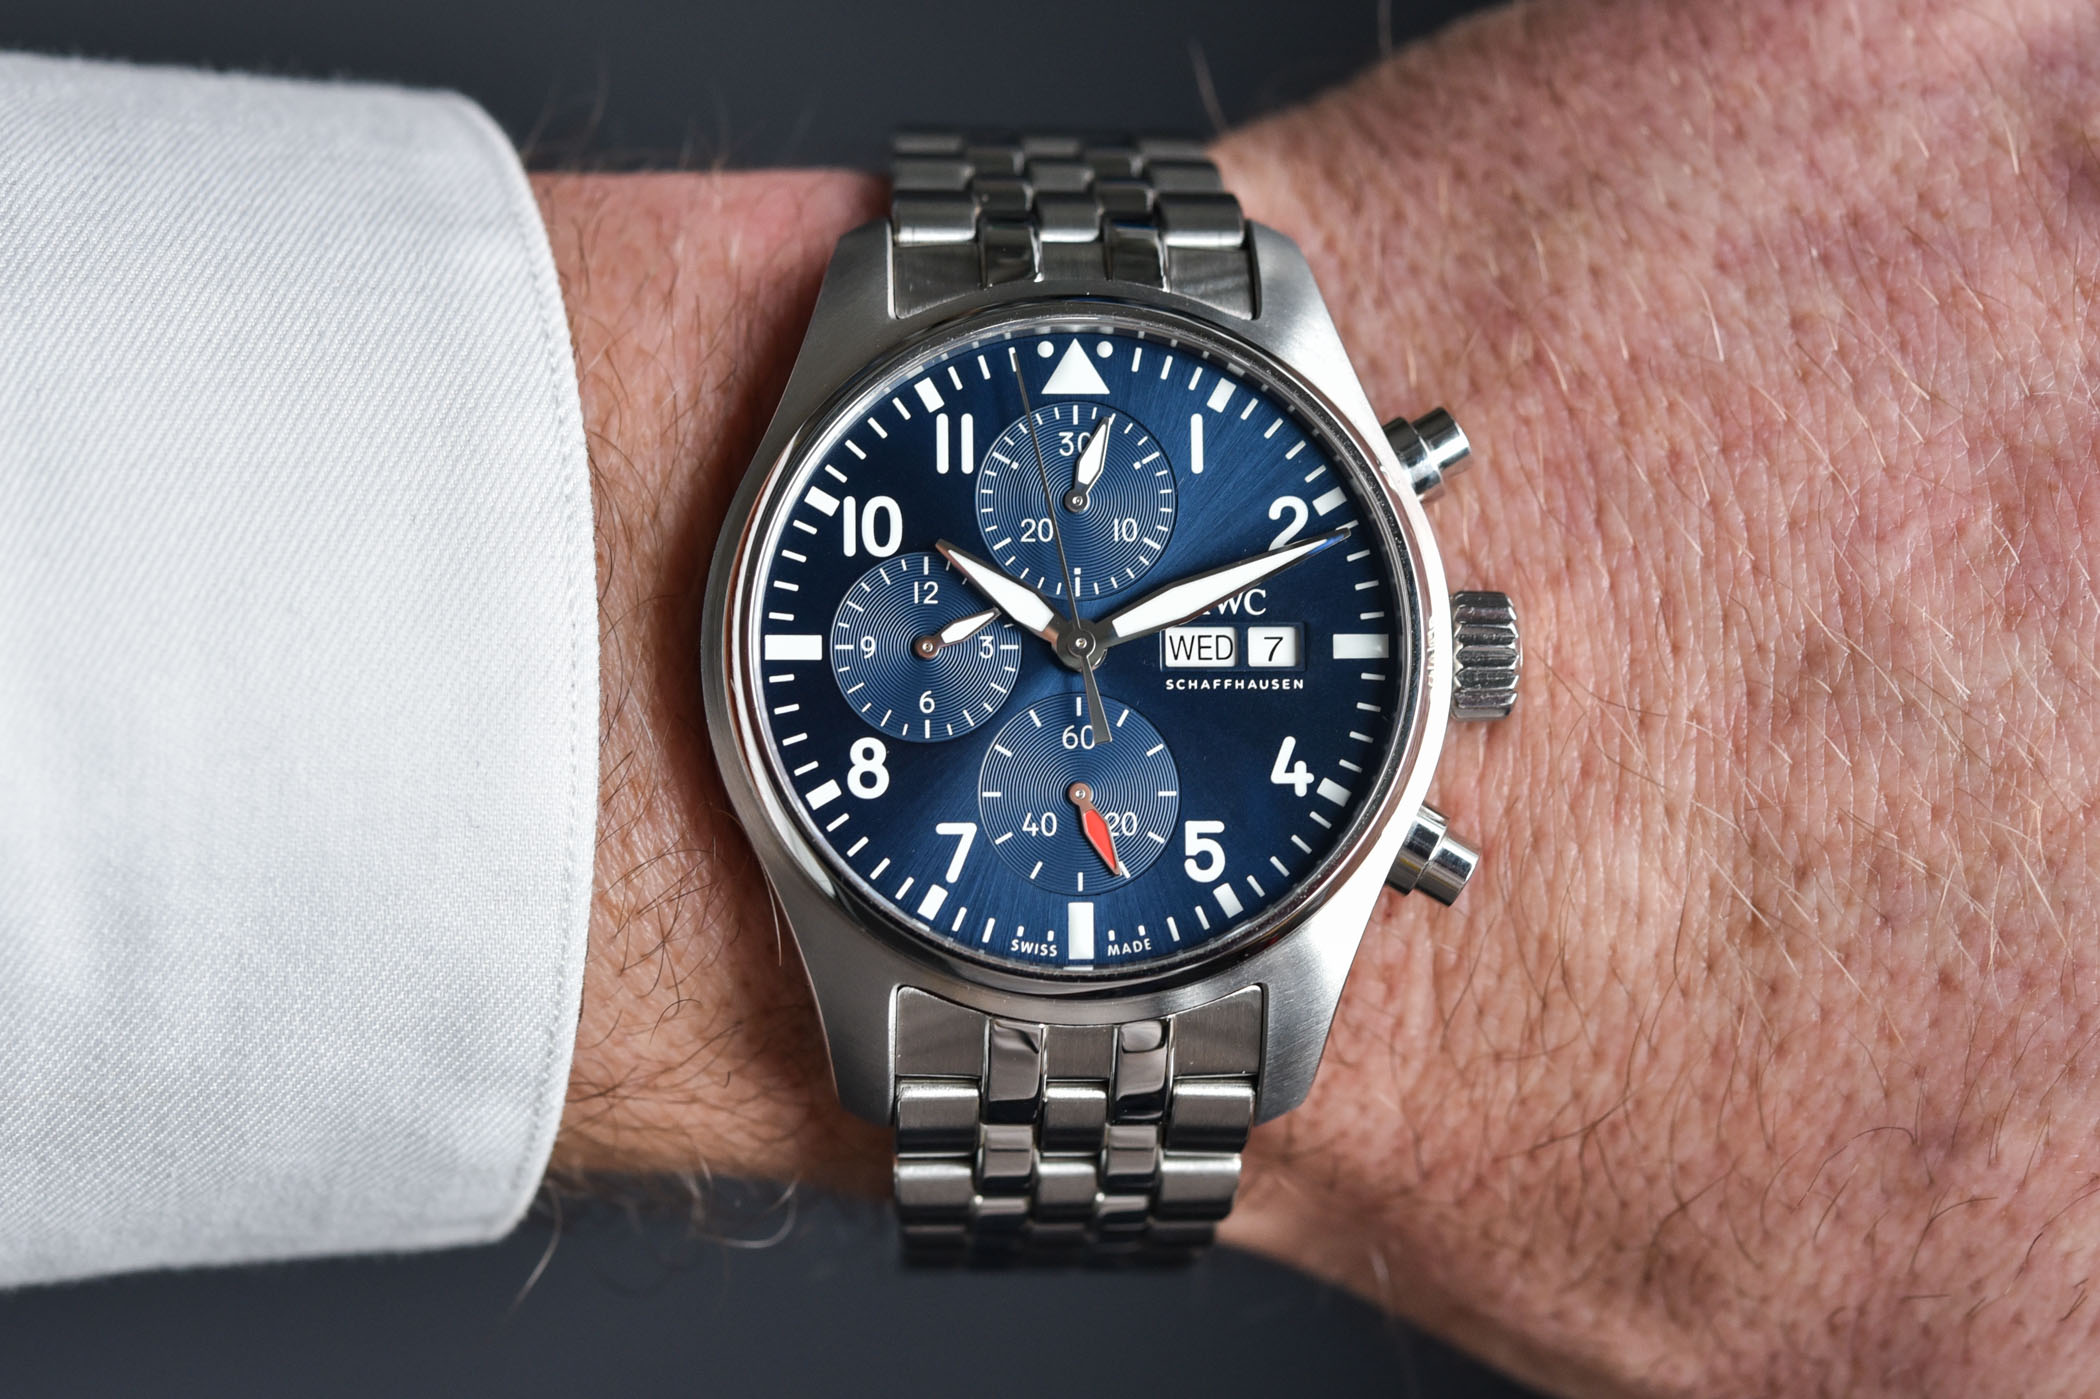 IWC Pilot's Watch Chronograph 41 - IW3881 - review video - 8